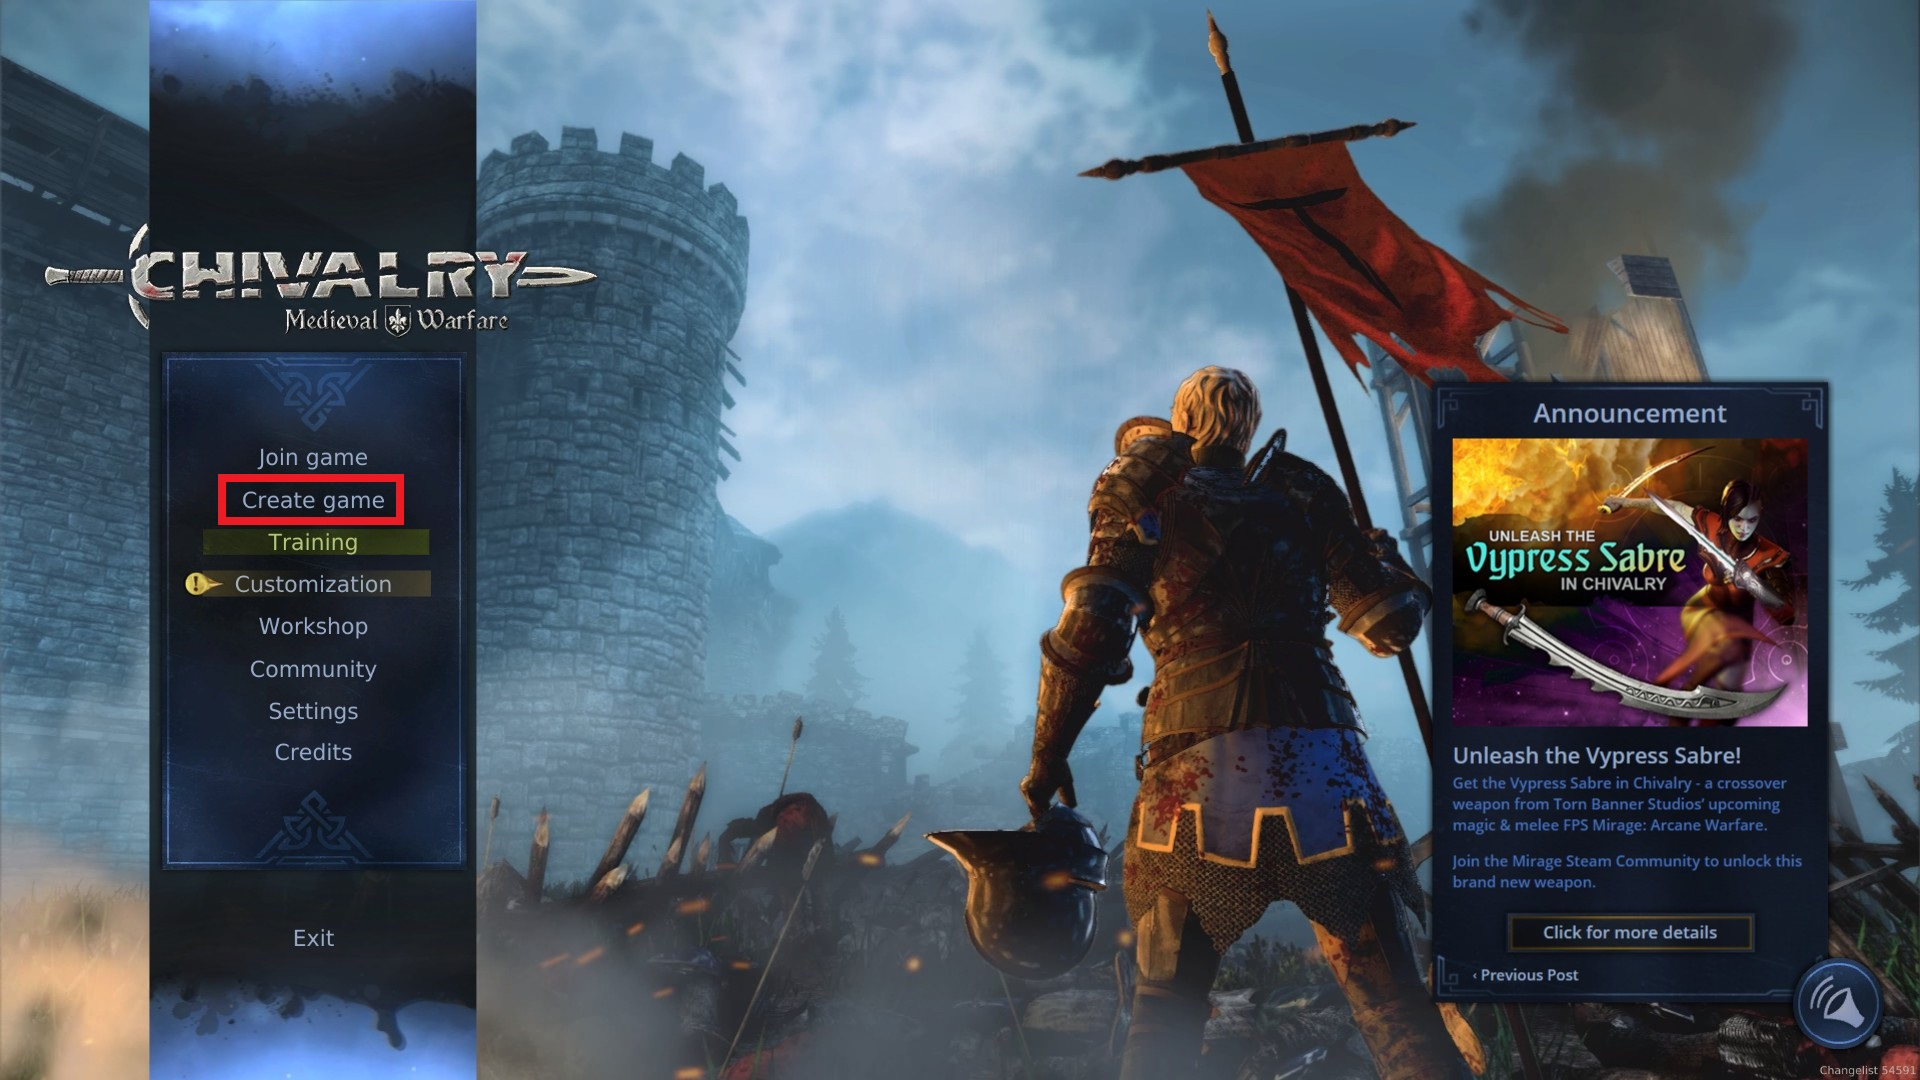 Play chivalry: medieval warfare on steam for free today.